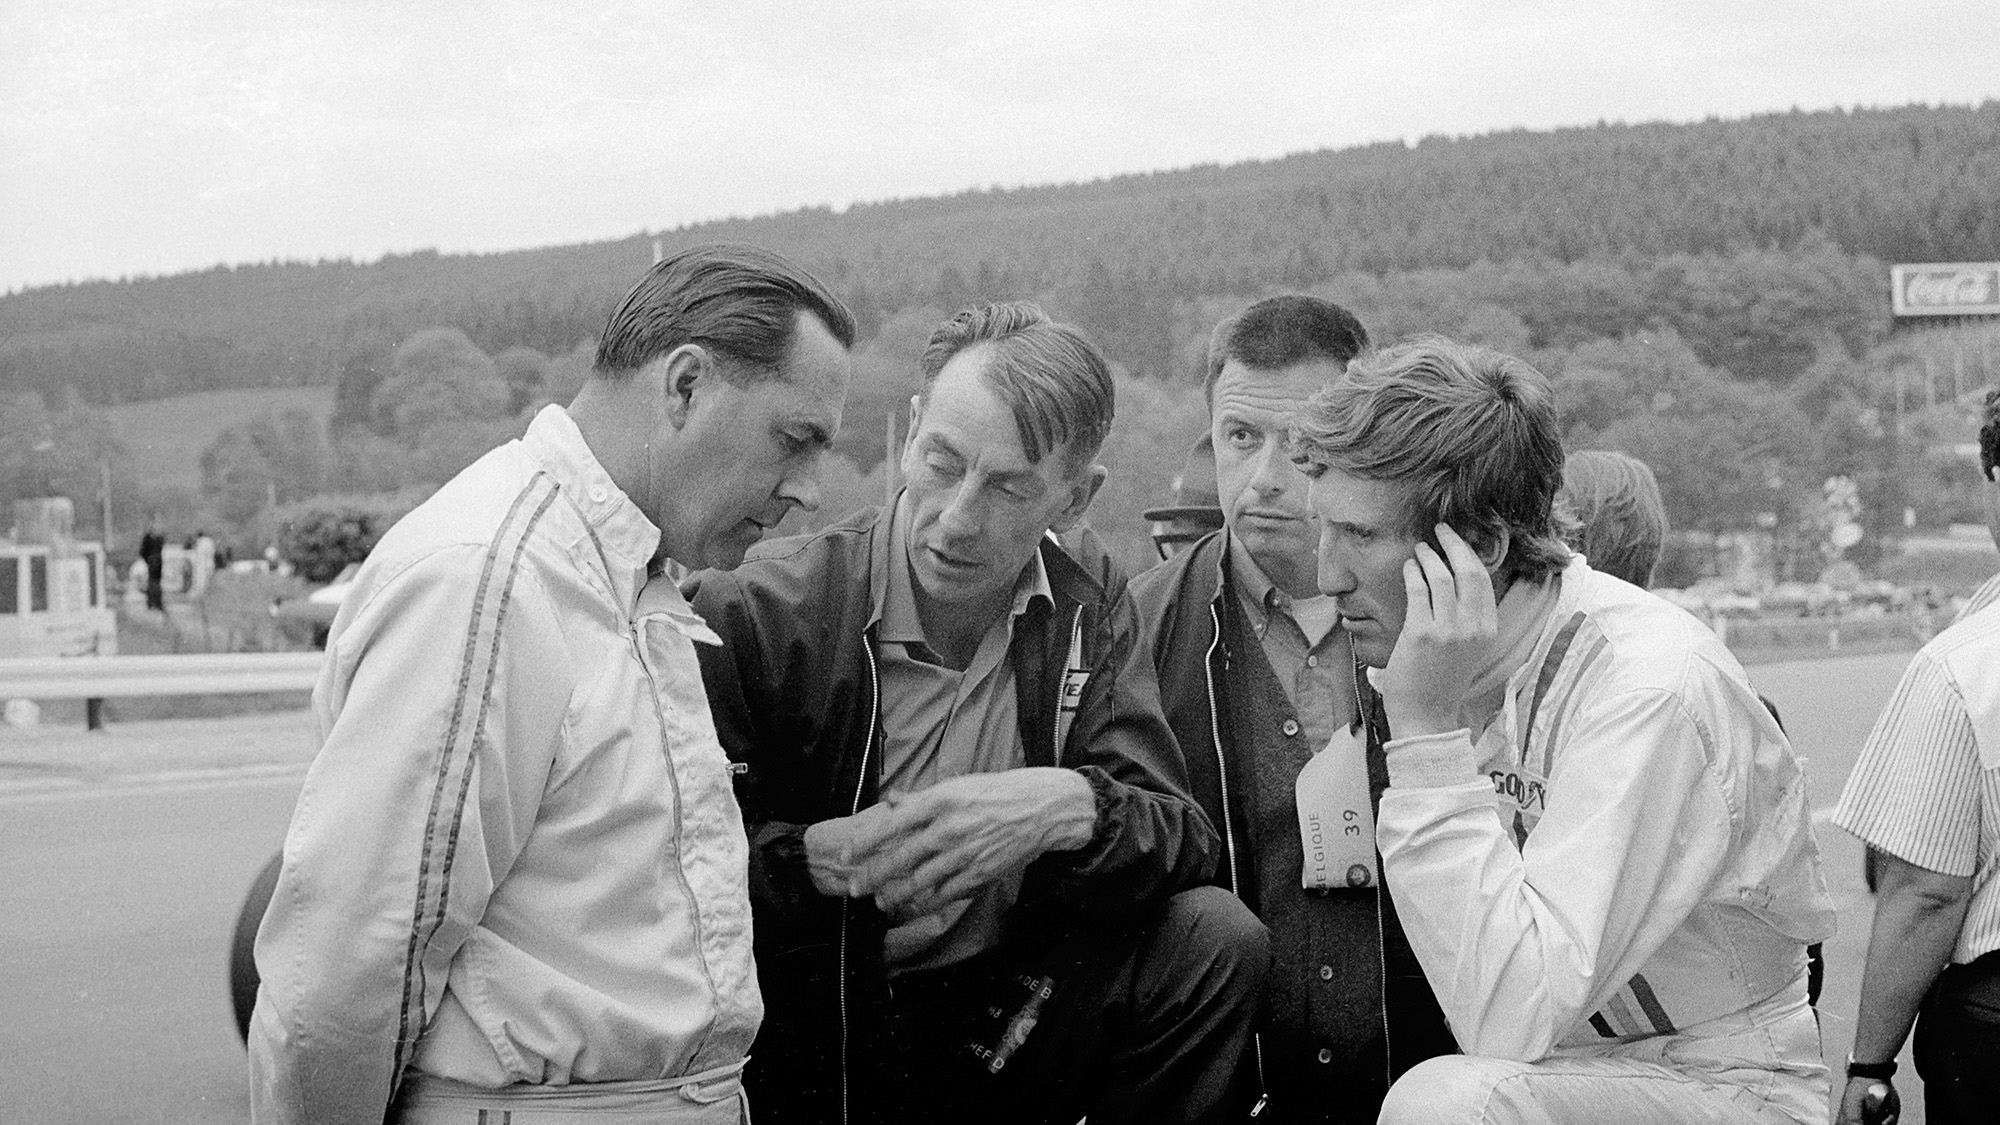 Jack Brabham with Ron Tauranac Leo Mehl and Jochen Rindt at the 1968 Belgian Grand Prix